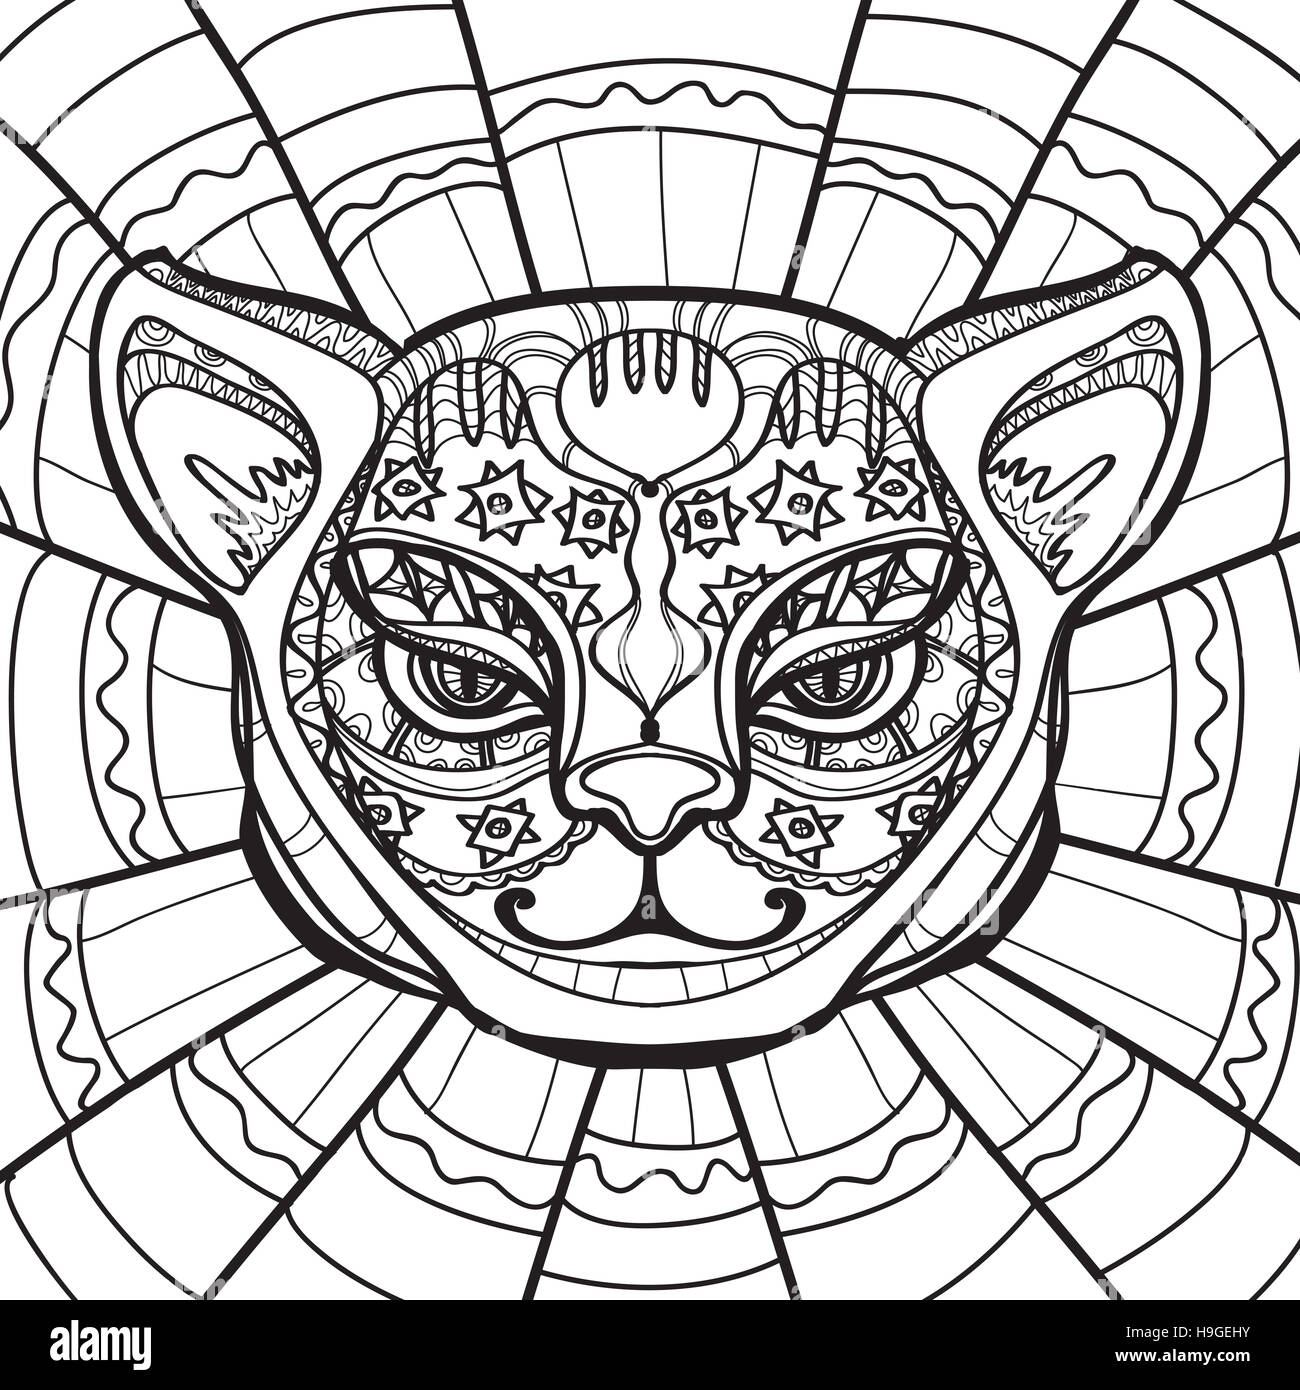 ethnic cat cat head hand drawn illustration in zentangle style coloring H9GEHY